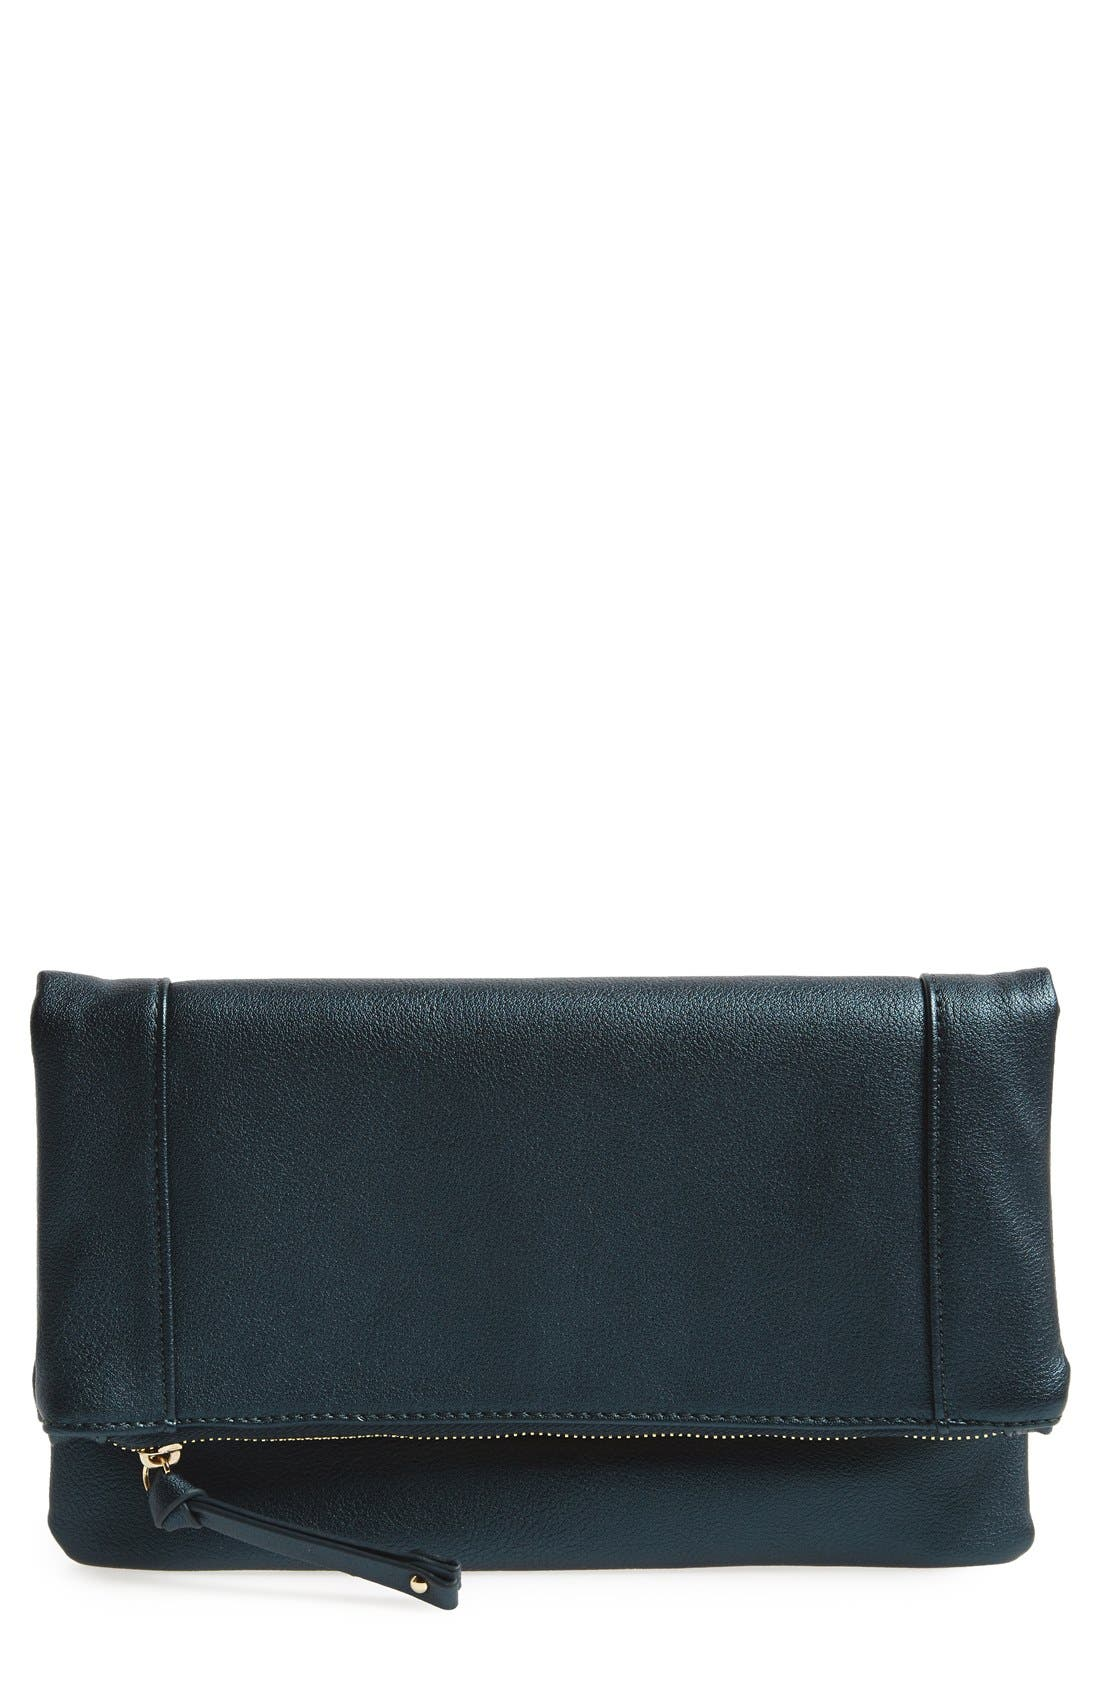 'Marlena' Faux Leather Foldover Clutch,                             Main thumbnail 1, color,                             Deep Teal